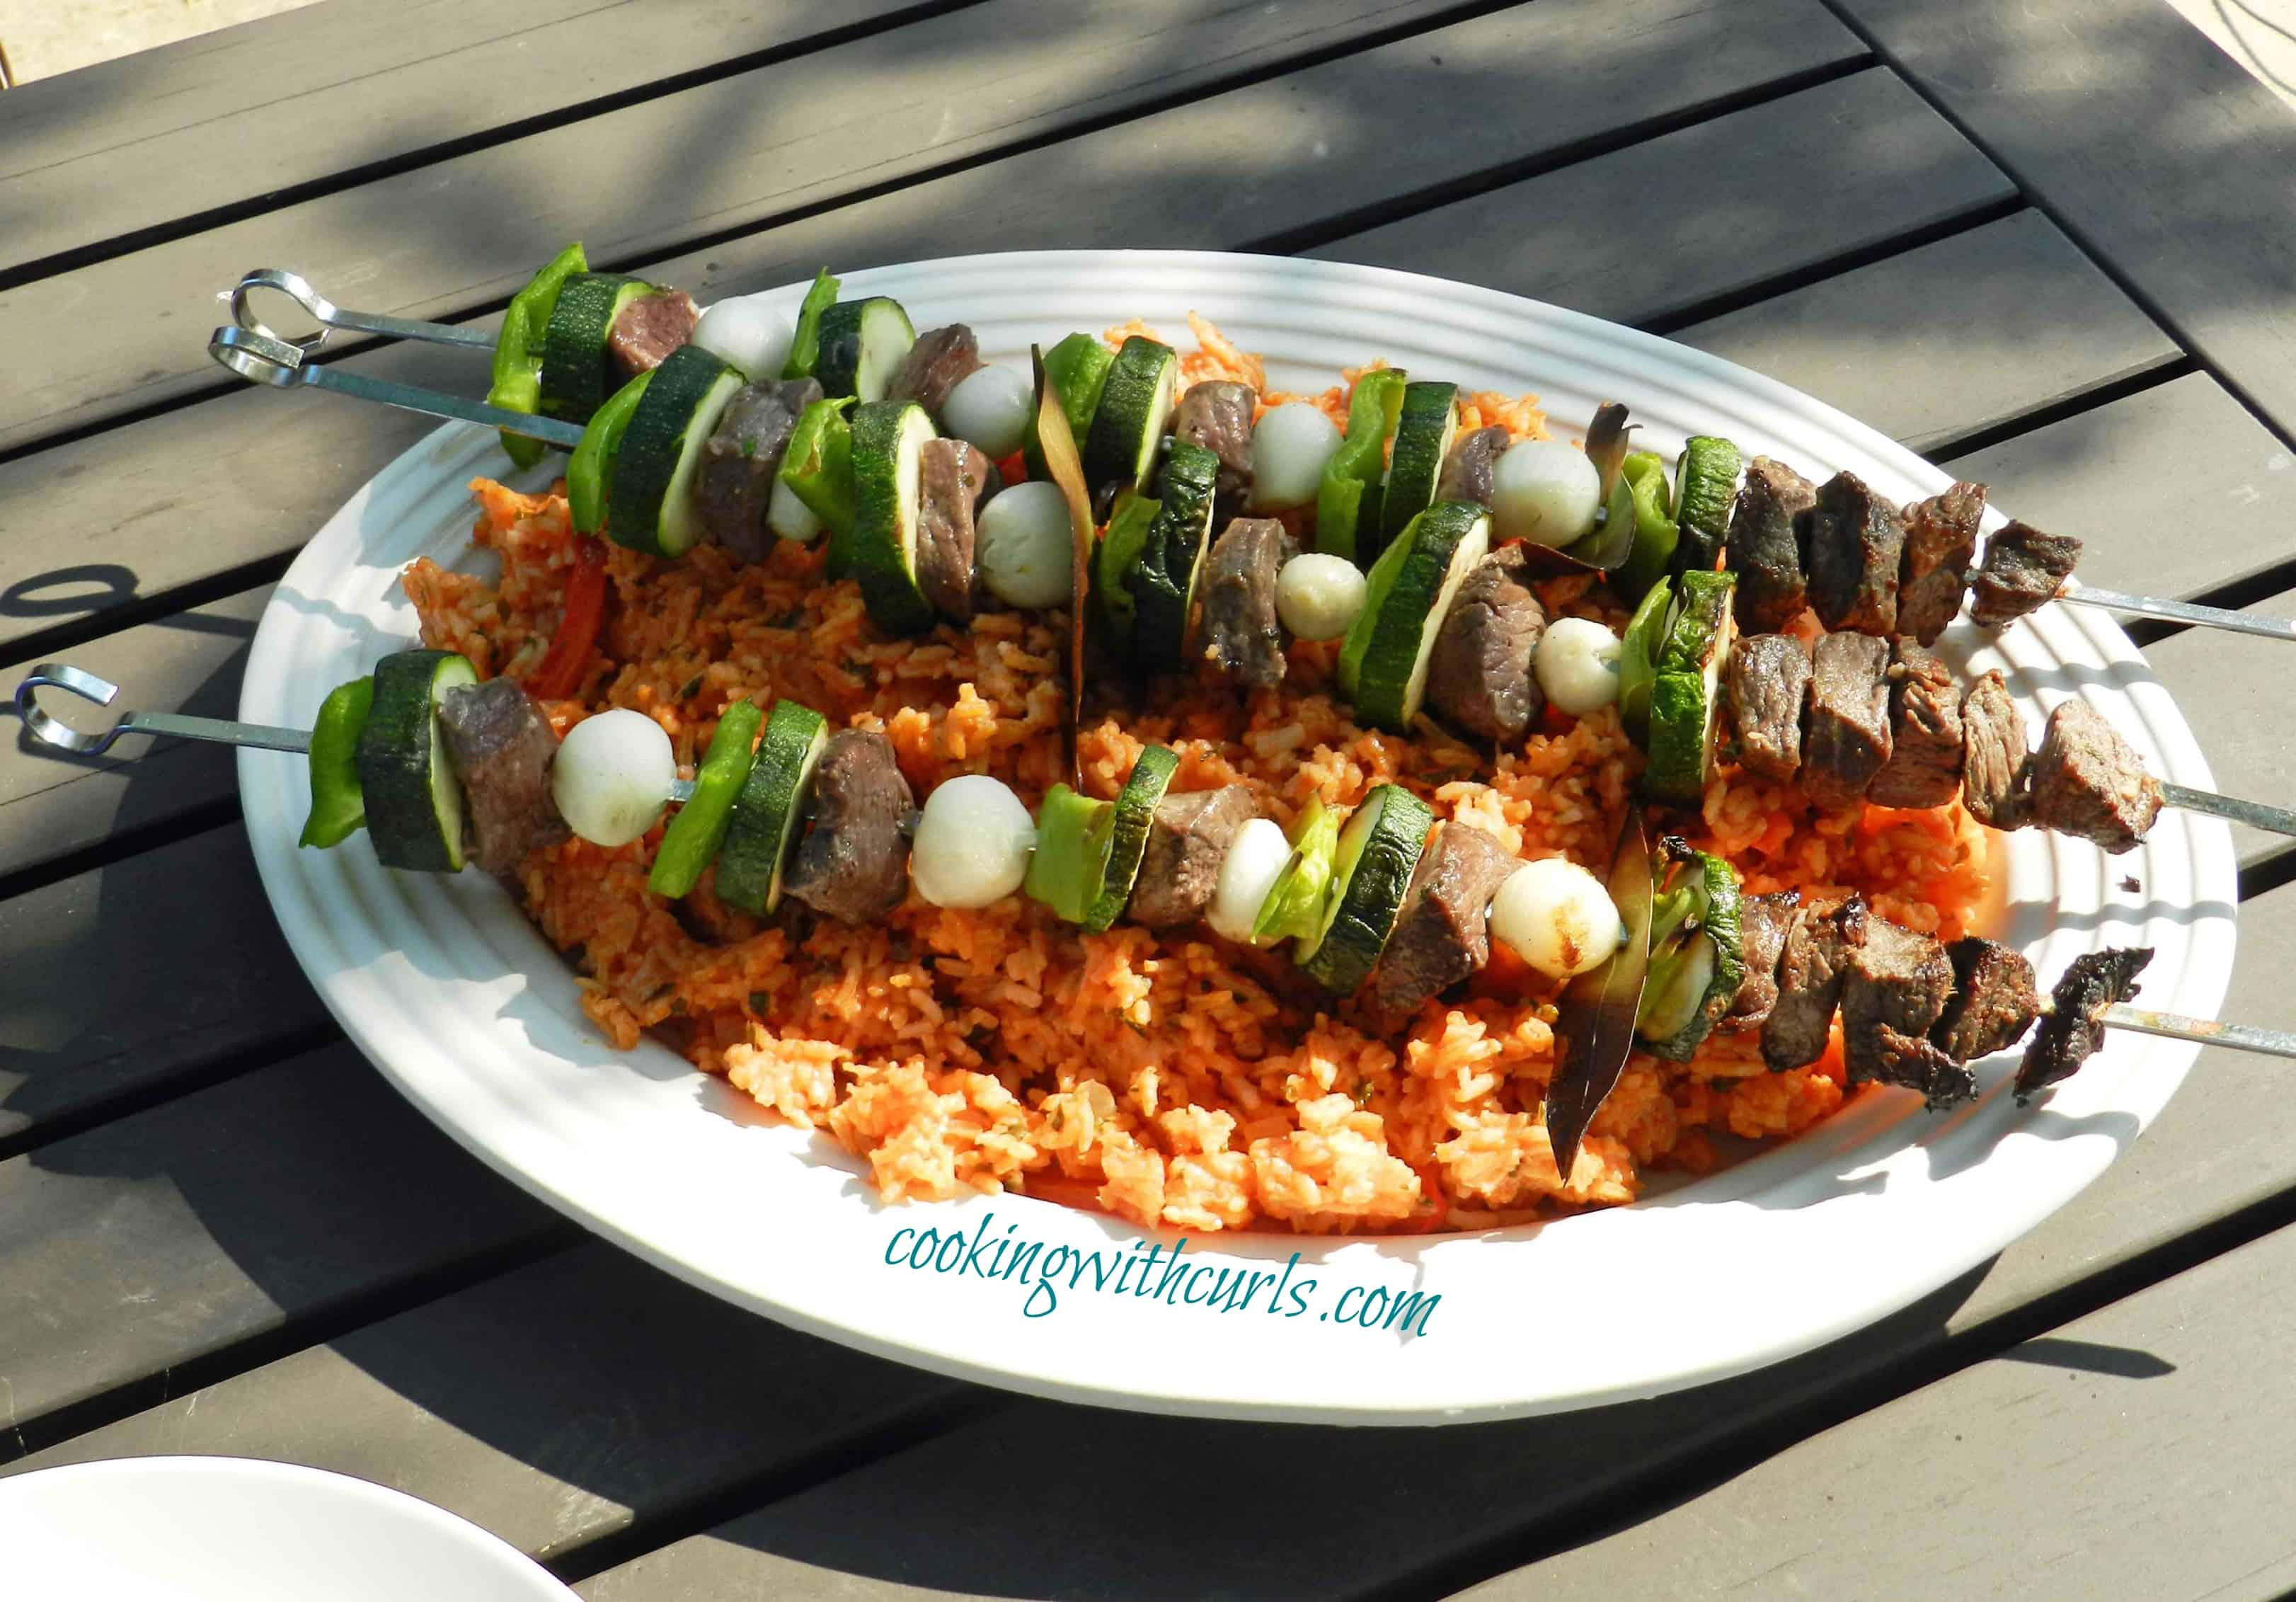 Lamb and Vegetable Kabobs Cooking with Astrology cookingwithcurls.com